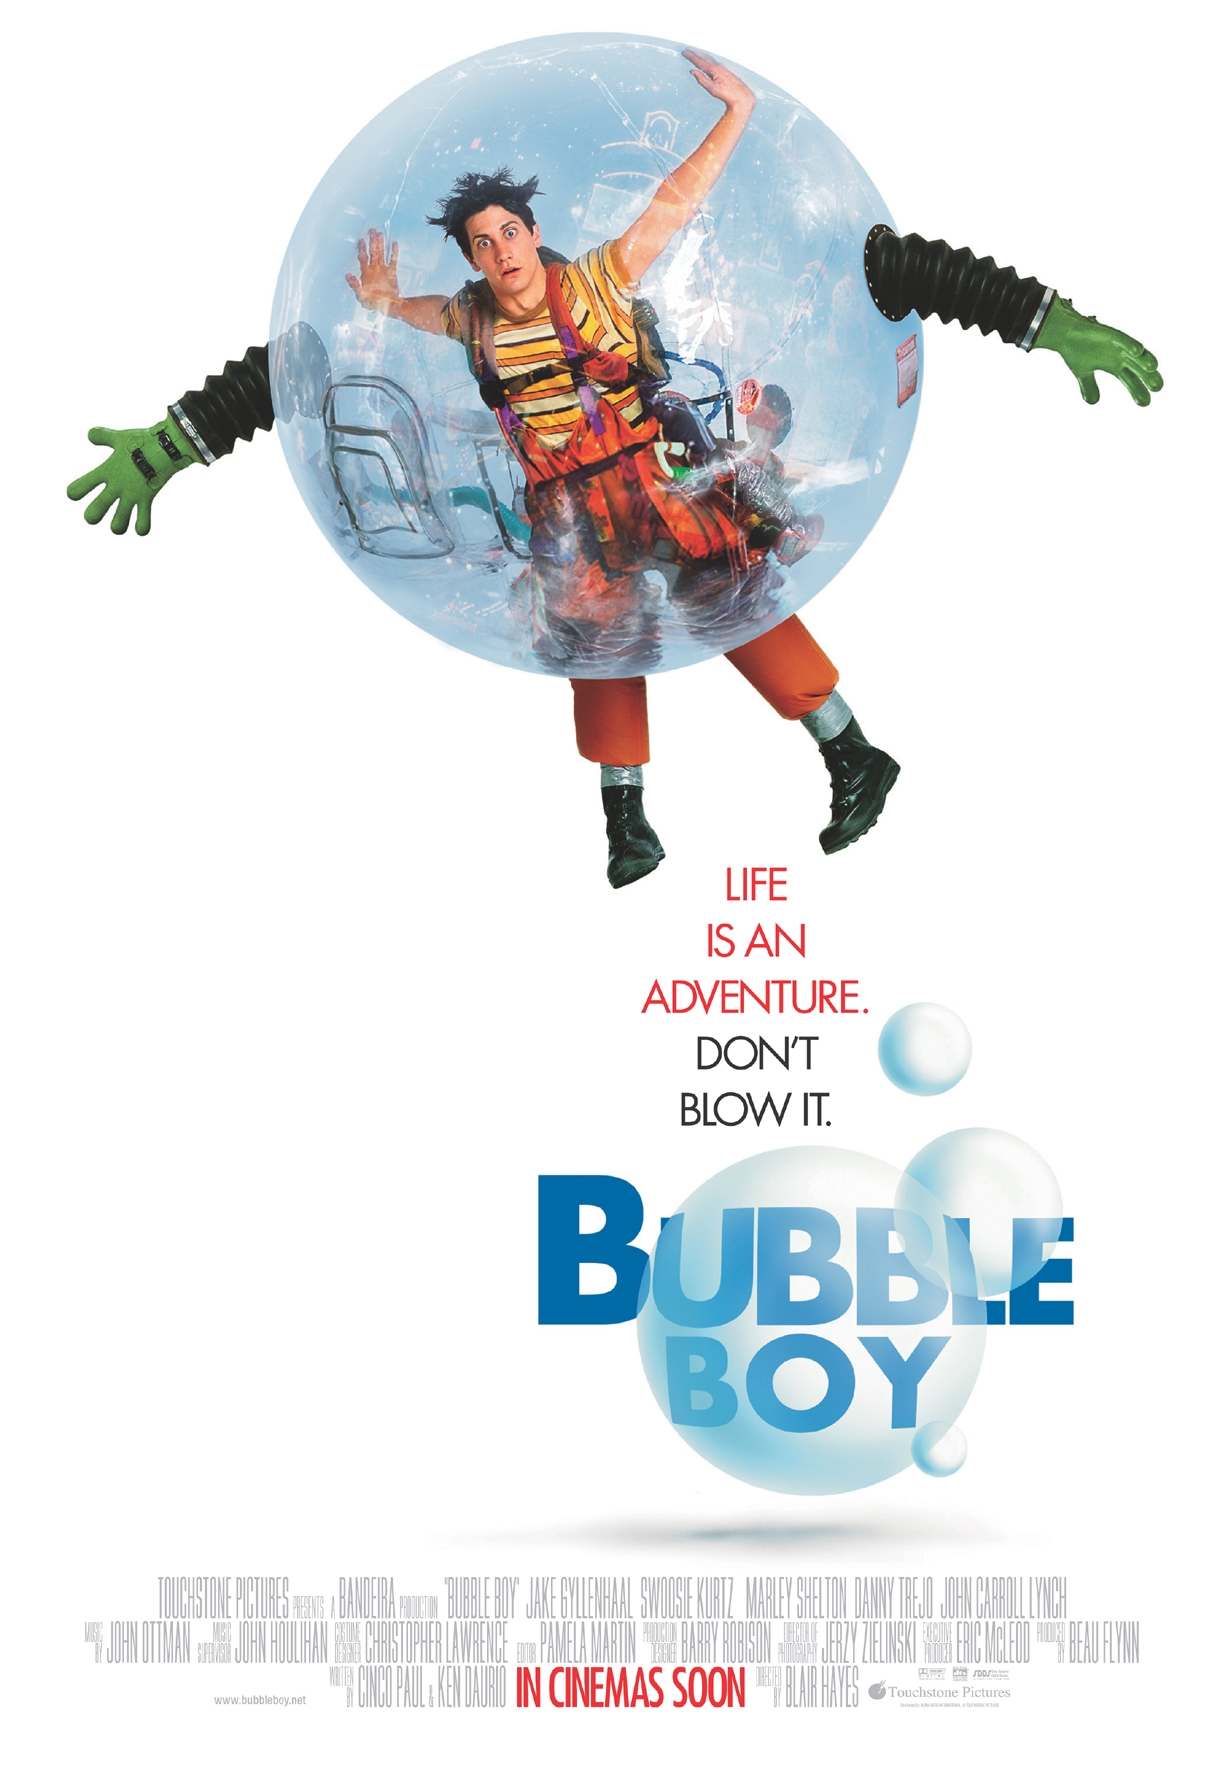 bubble boy Disney touchstone affiche posterbubble boy Disney touchstone affiche poster